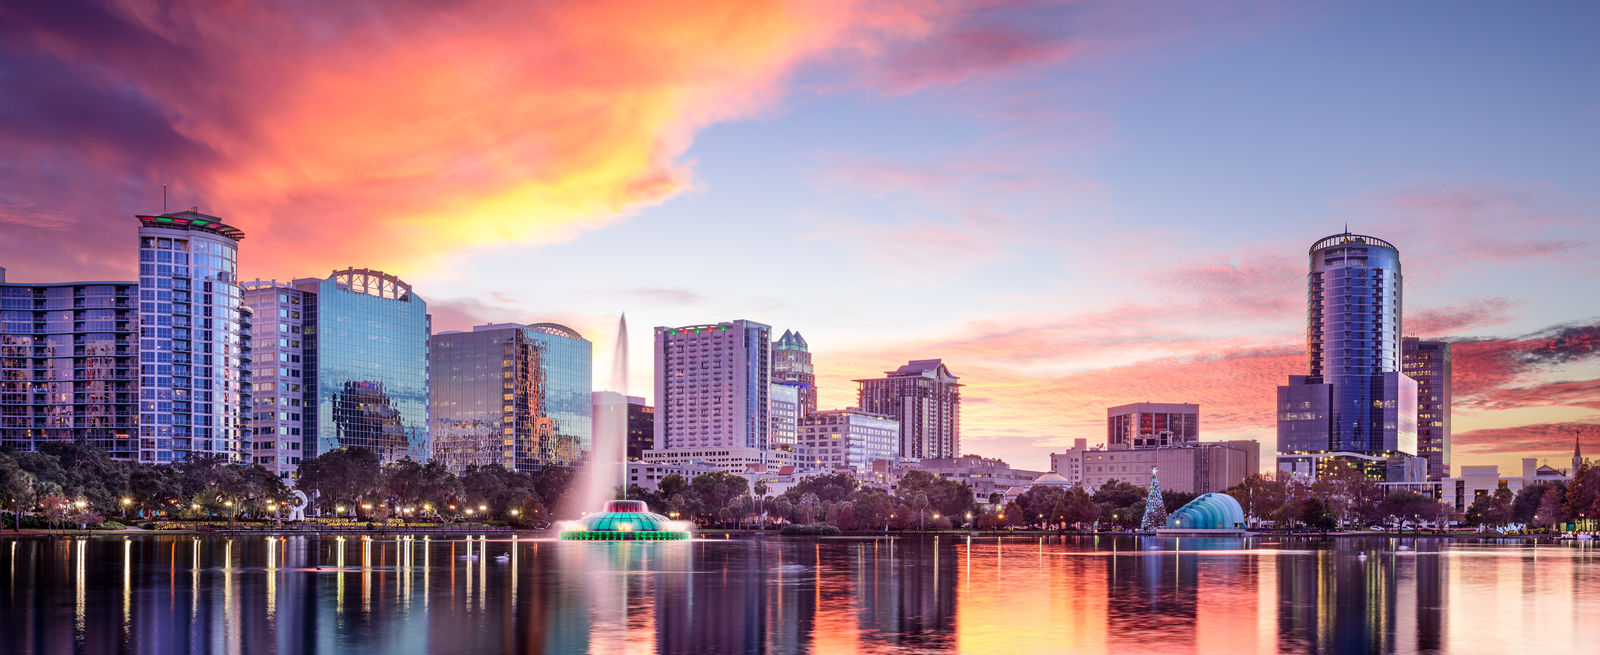 Orlando Florida city scape over water at sunset